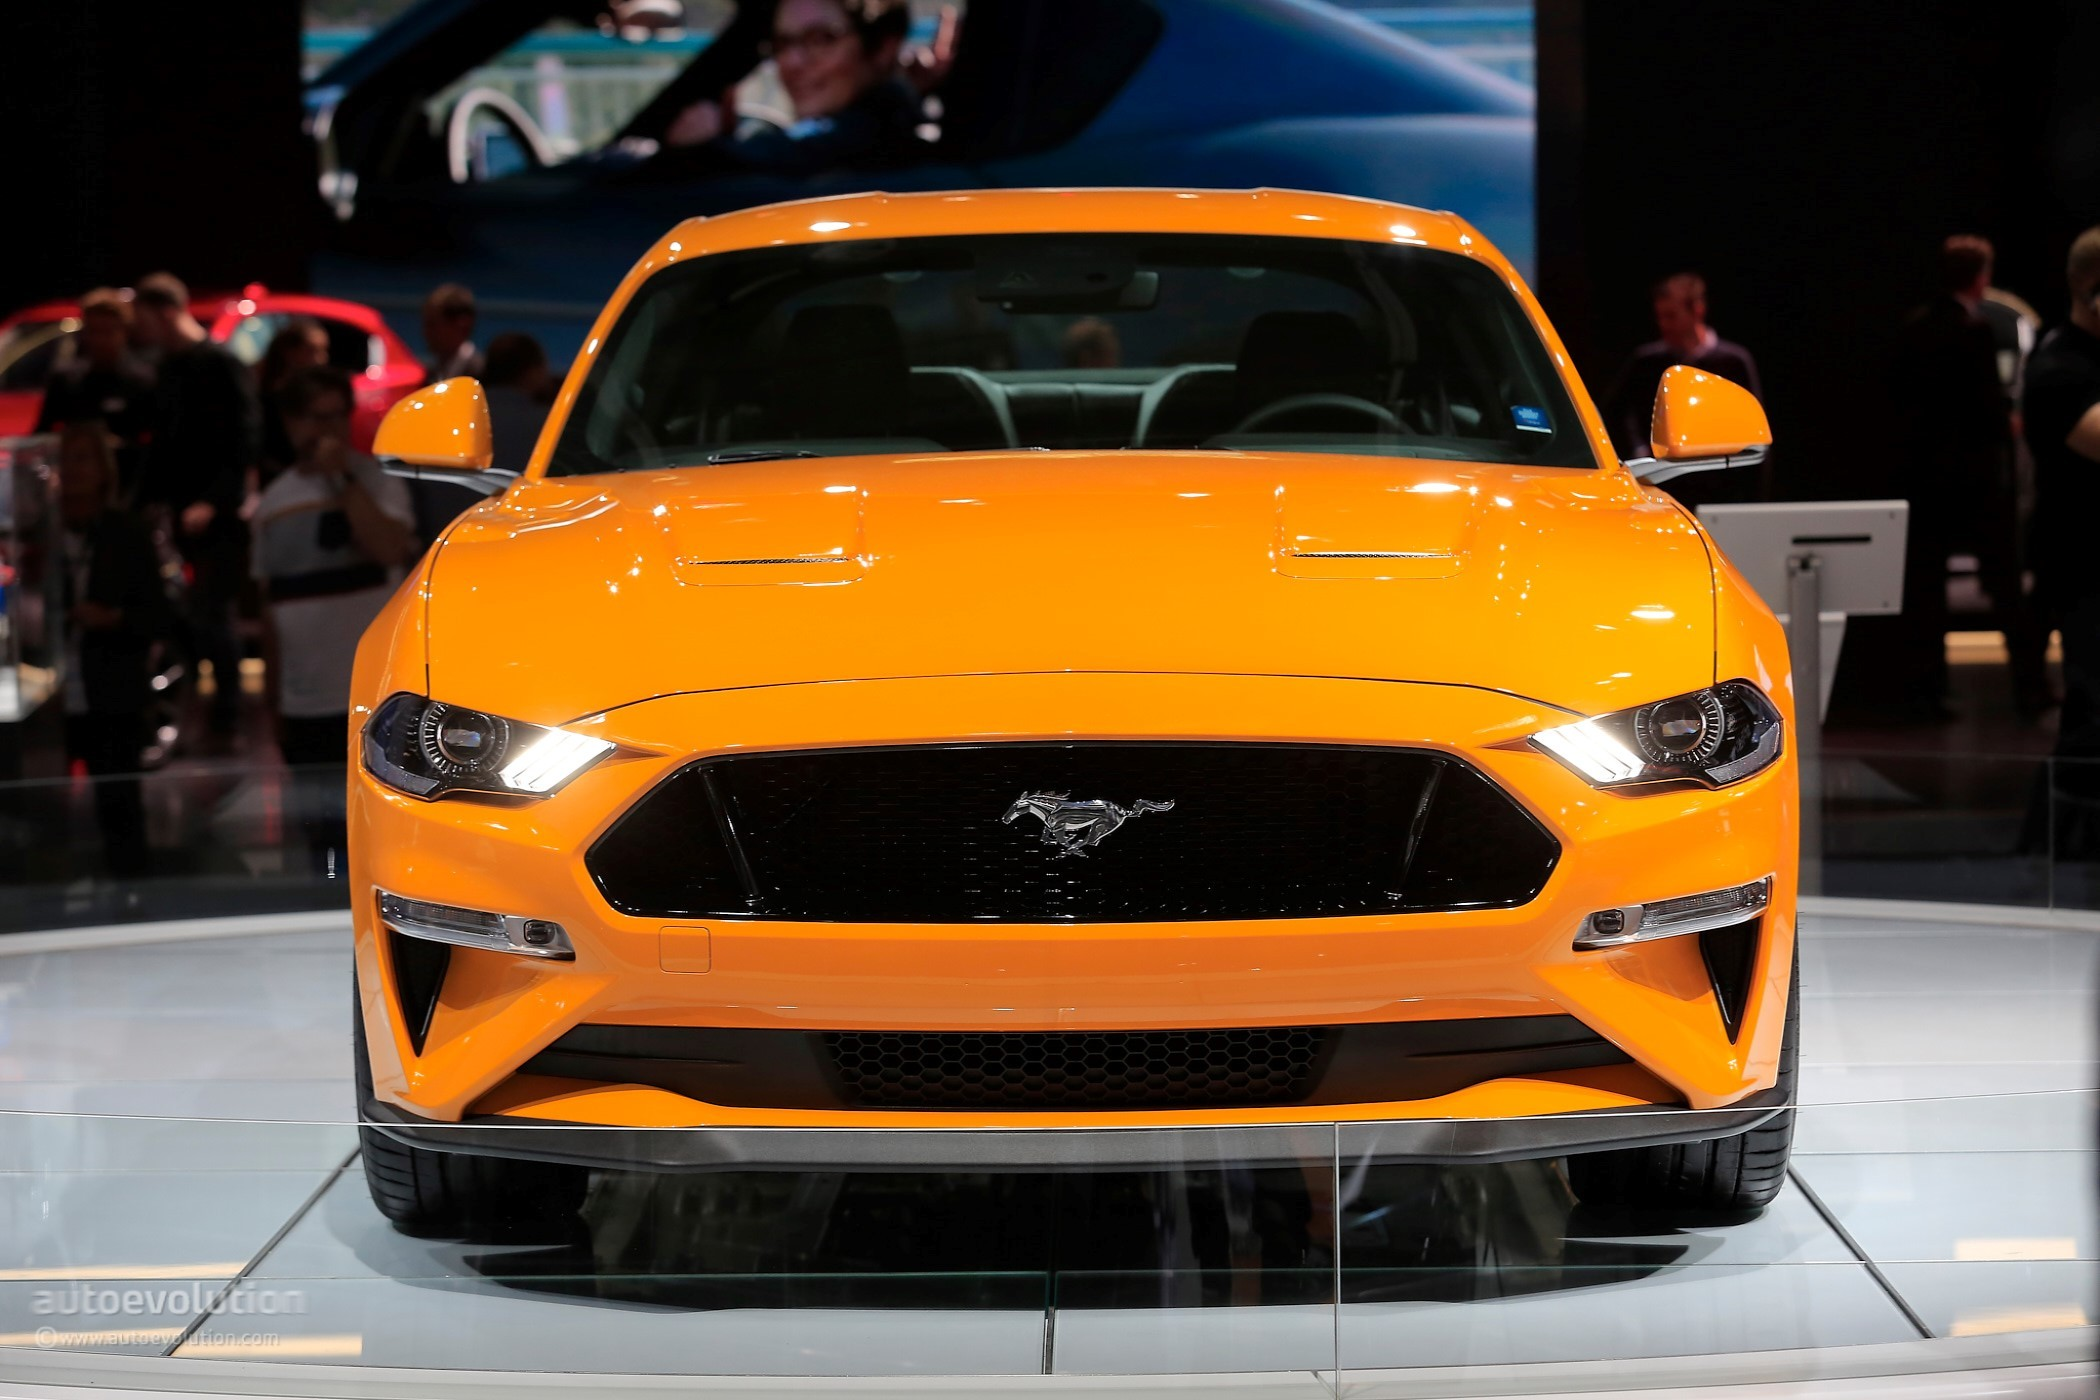 Ford Mustang Hybrid Said to Have About 400 HP and 400 LB ...